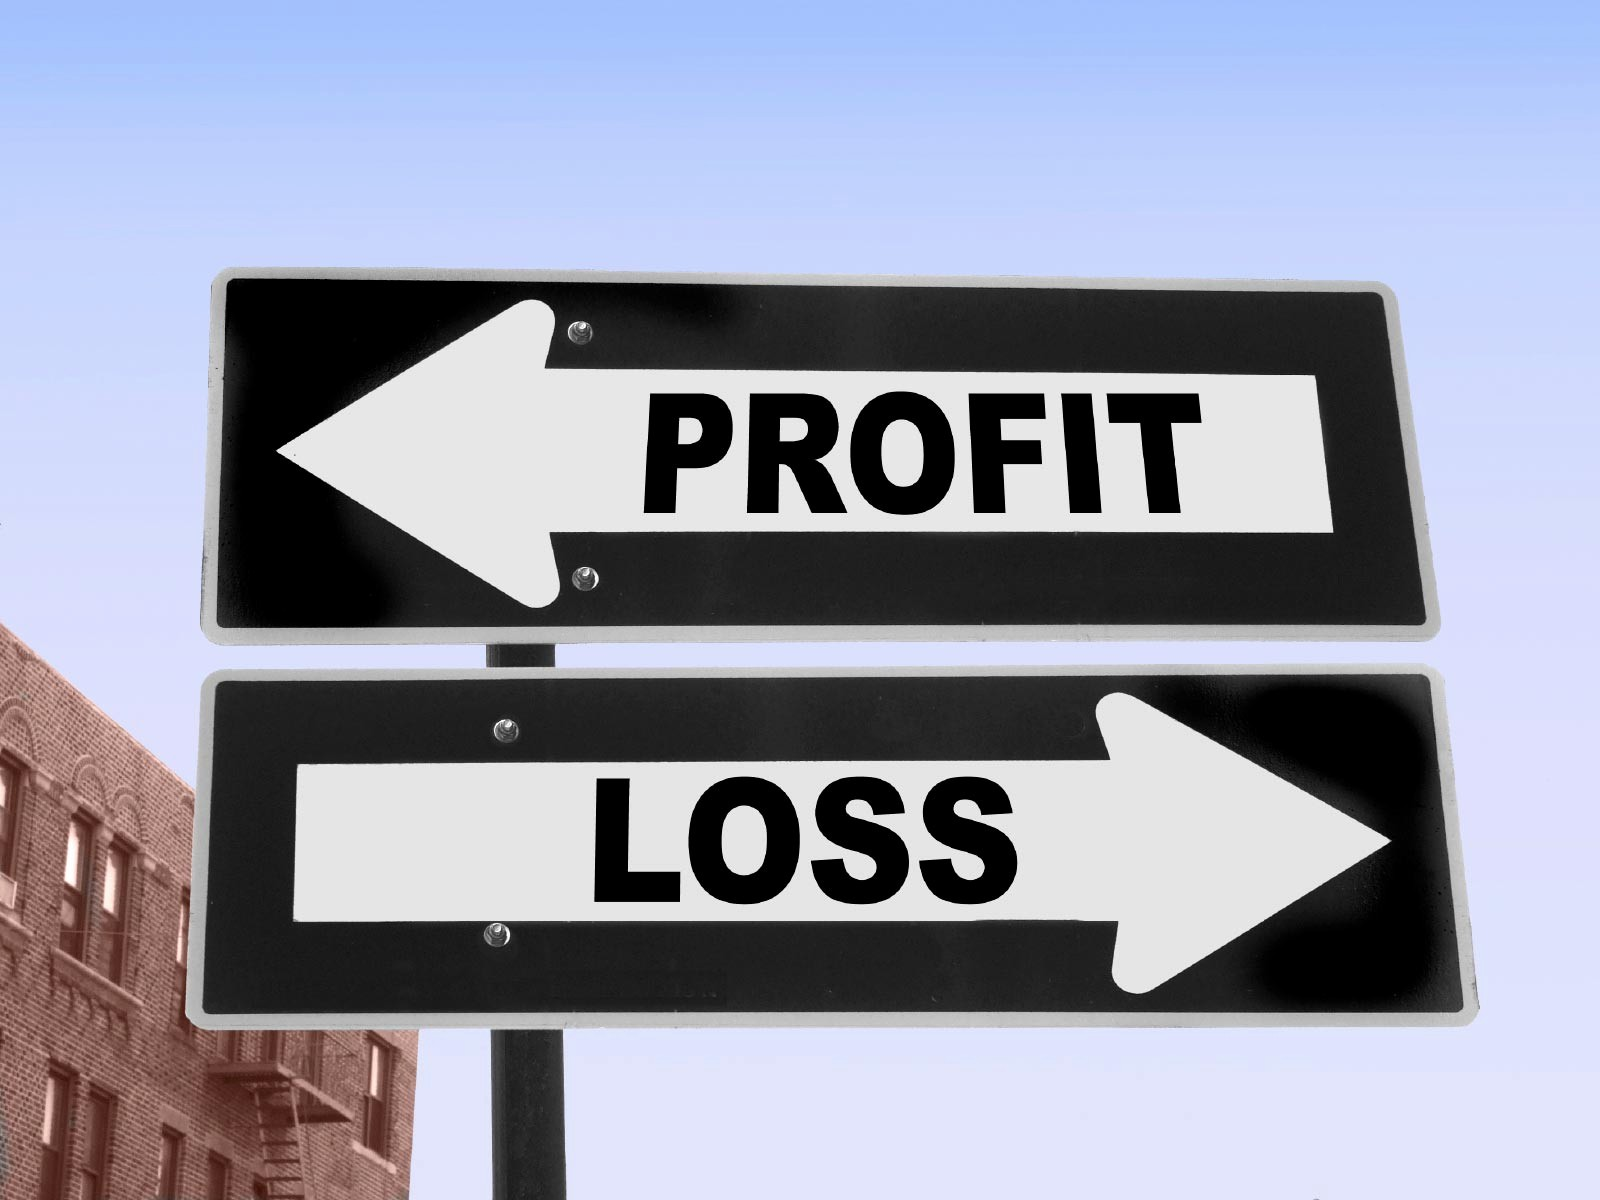 Small Business P&l Beautiful Profit and Loss Statement Capturing Small Business In E